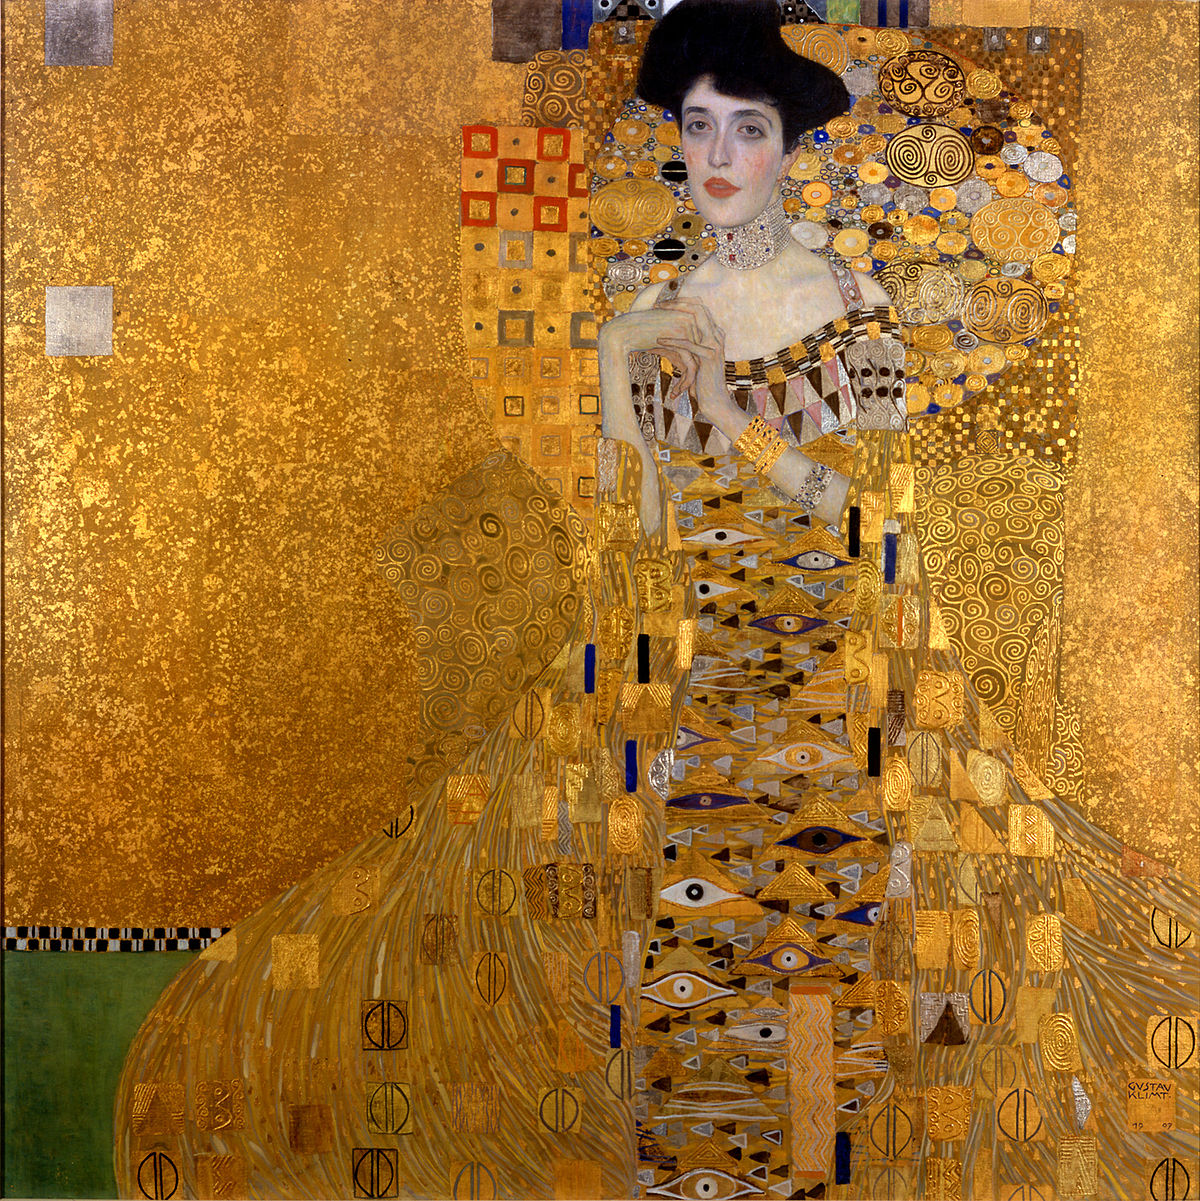 Gustav Klimt,  Portrait of Adele Bloch-Bauer I , 1907, Oil, silver, and gold on canvas.   Like many artists, Klimt painted the portraits of people in high society. The portrait was commissioned by the sitter's husband Ferdinand Bloch-Bauer, an Austrian Jewish banker and sugar producer. A second portrait of Adele was completed in 1912. Adele died in 1925, years before the Nazis stole the portrait in 1941.